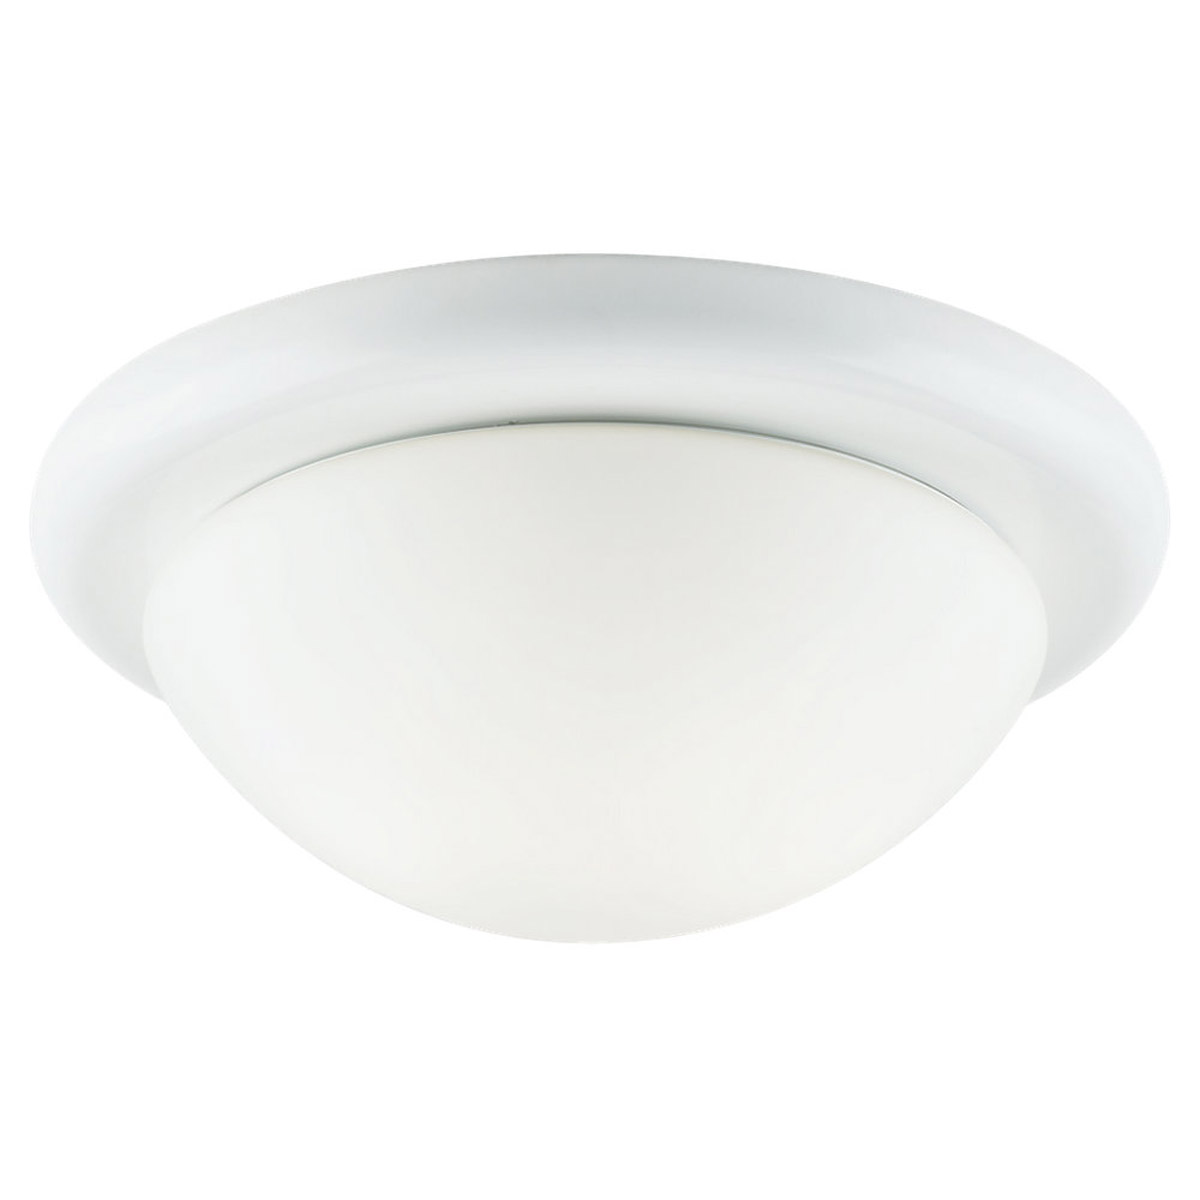 Sea Gull Lighting Twist-Lock Fitters 1 Light Flush Mount in White 53069-15